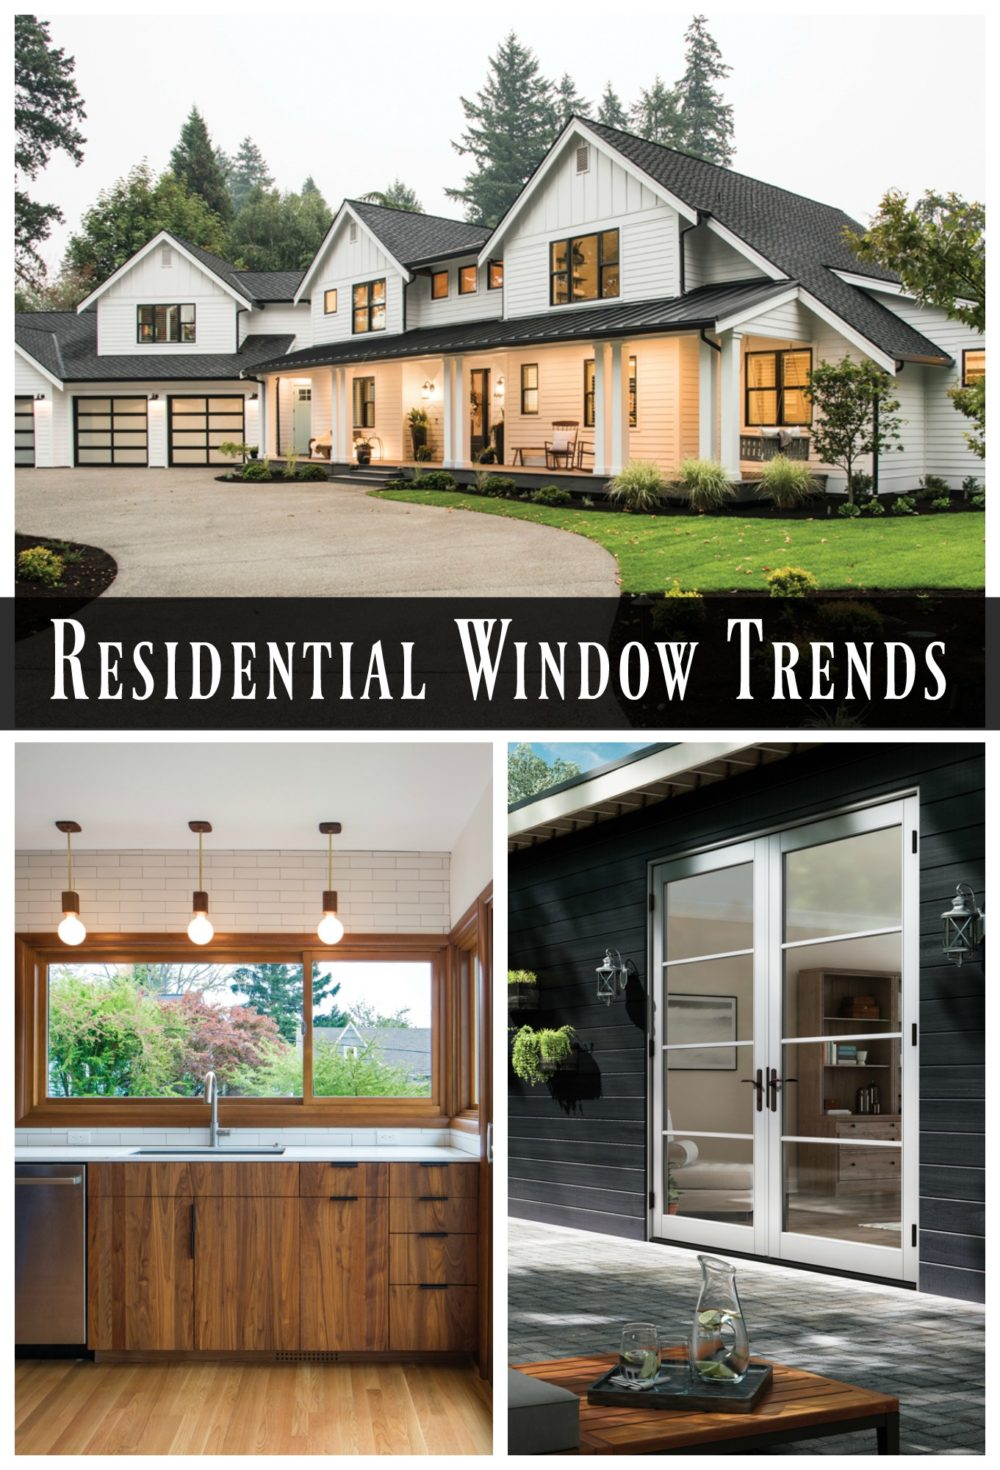 Take a look at these gorgeous residential window trends from black modern farmhouse to mid century modern wood tones. All from Milgard Windows.